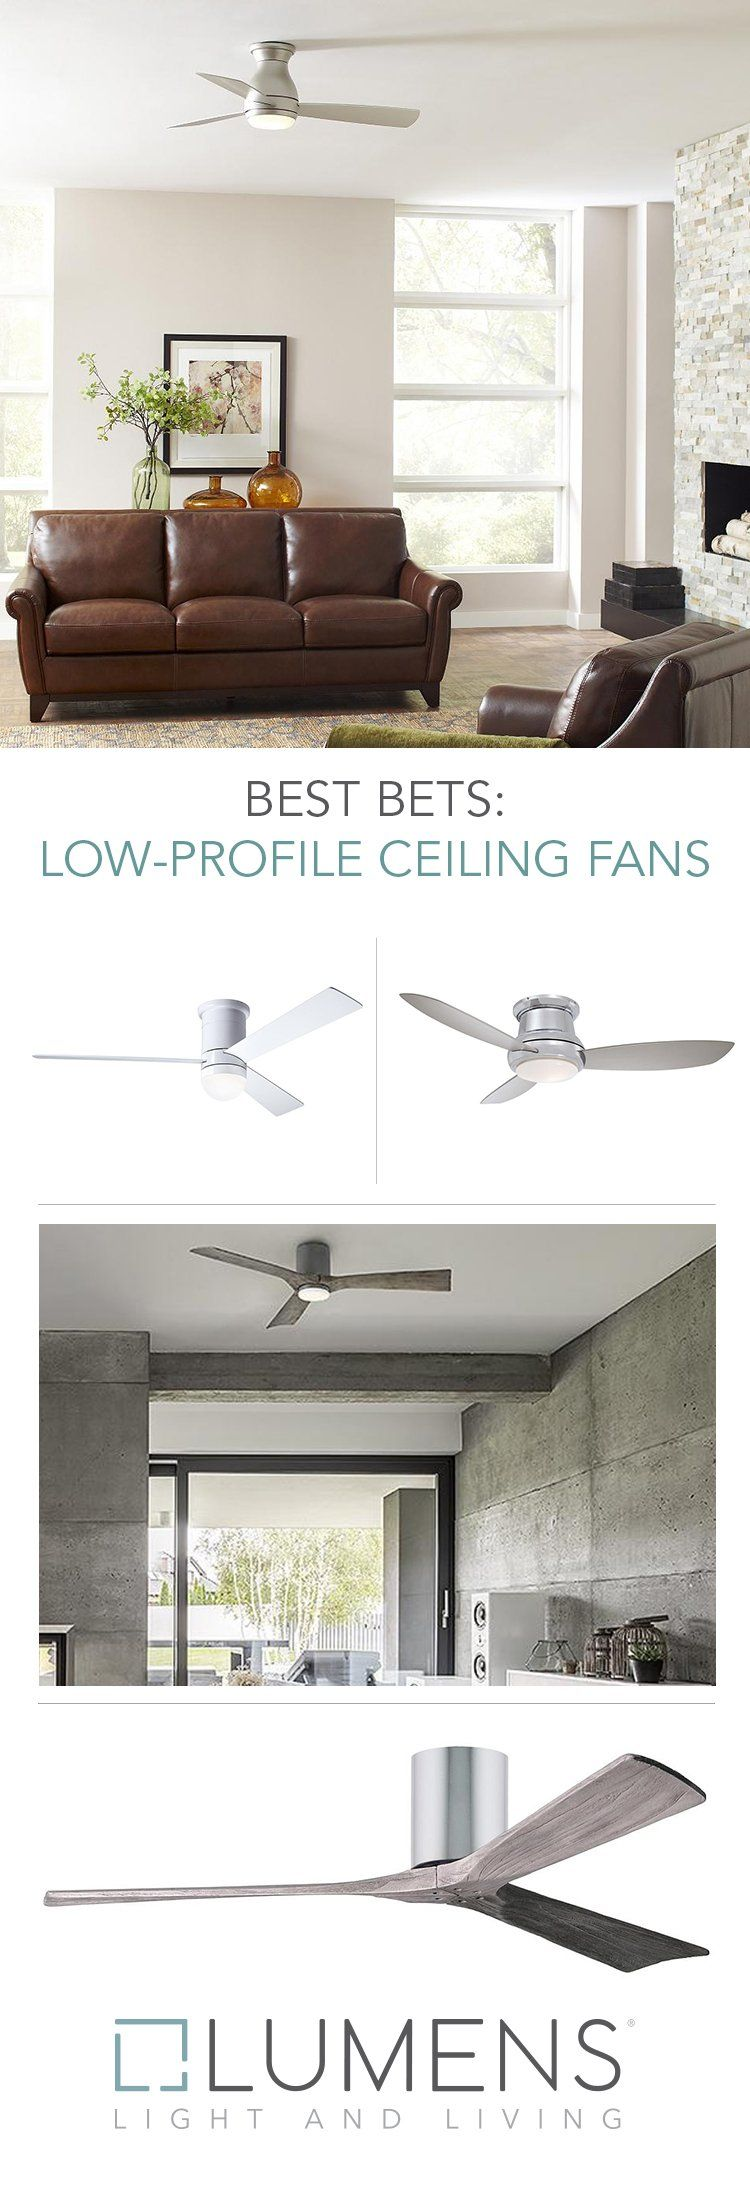 Low Profile Ceiling Fans Also Known As Hugger Fans Or Flushmount Fans Are Great Options In Rooms With Low Cei Ceiling Fan Low Profile Ceiling Fan Low Ceiling